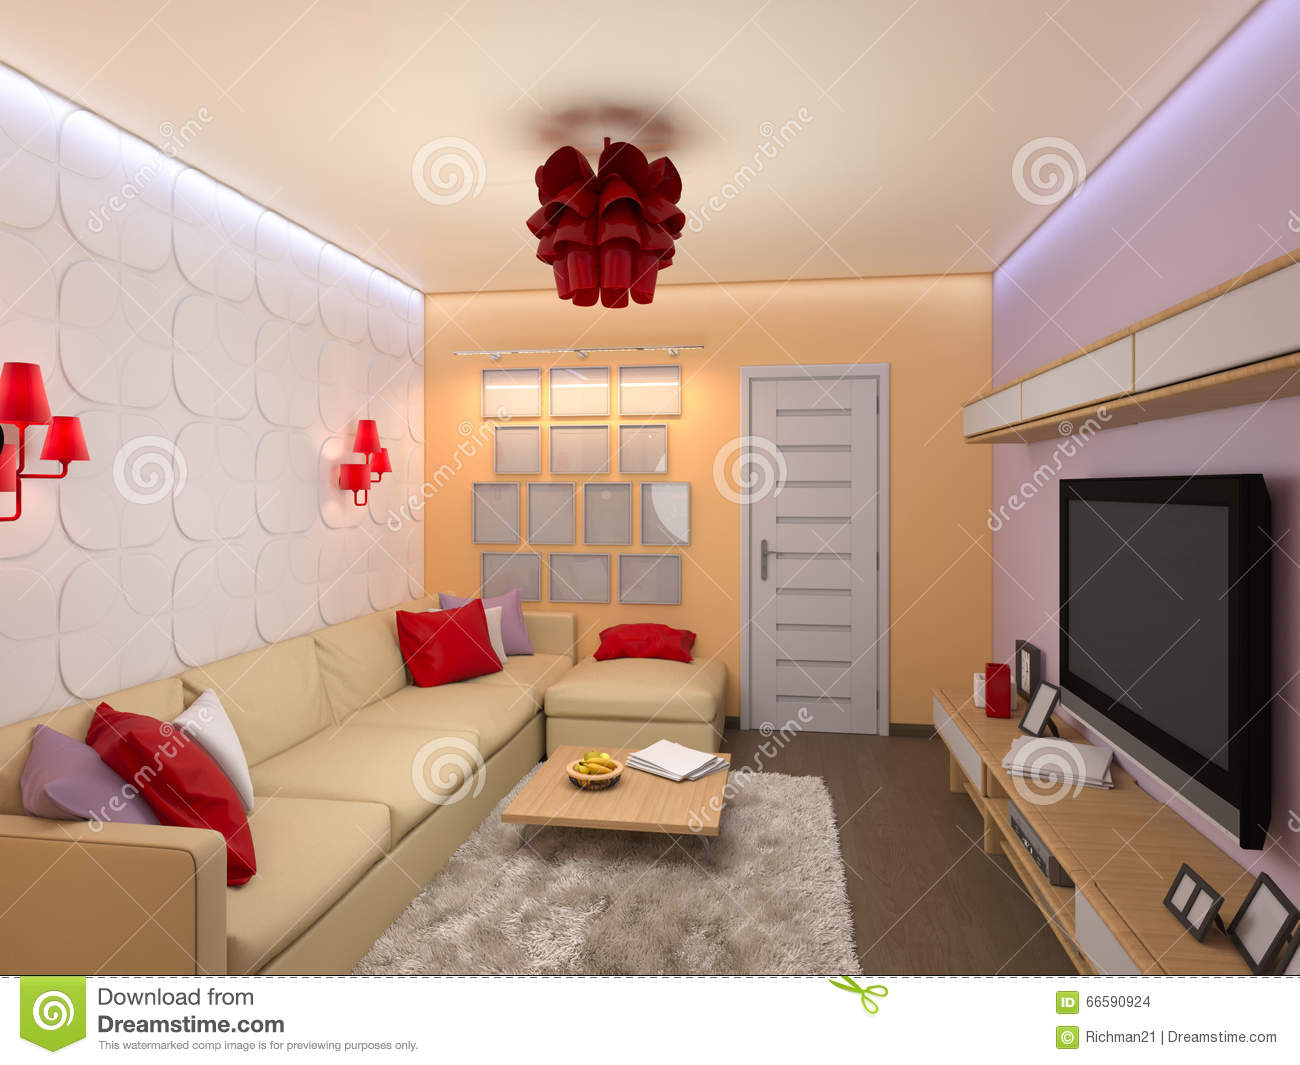 3d ender Of he Interior Design Of he Living oom In Modern S ... - ^